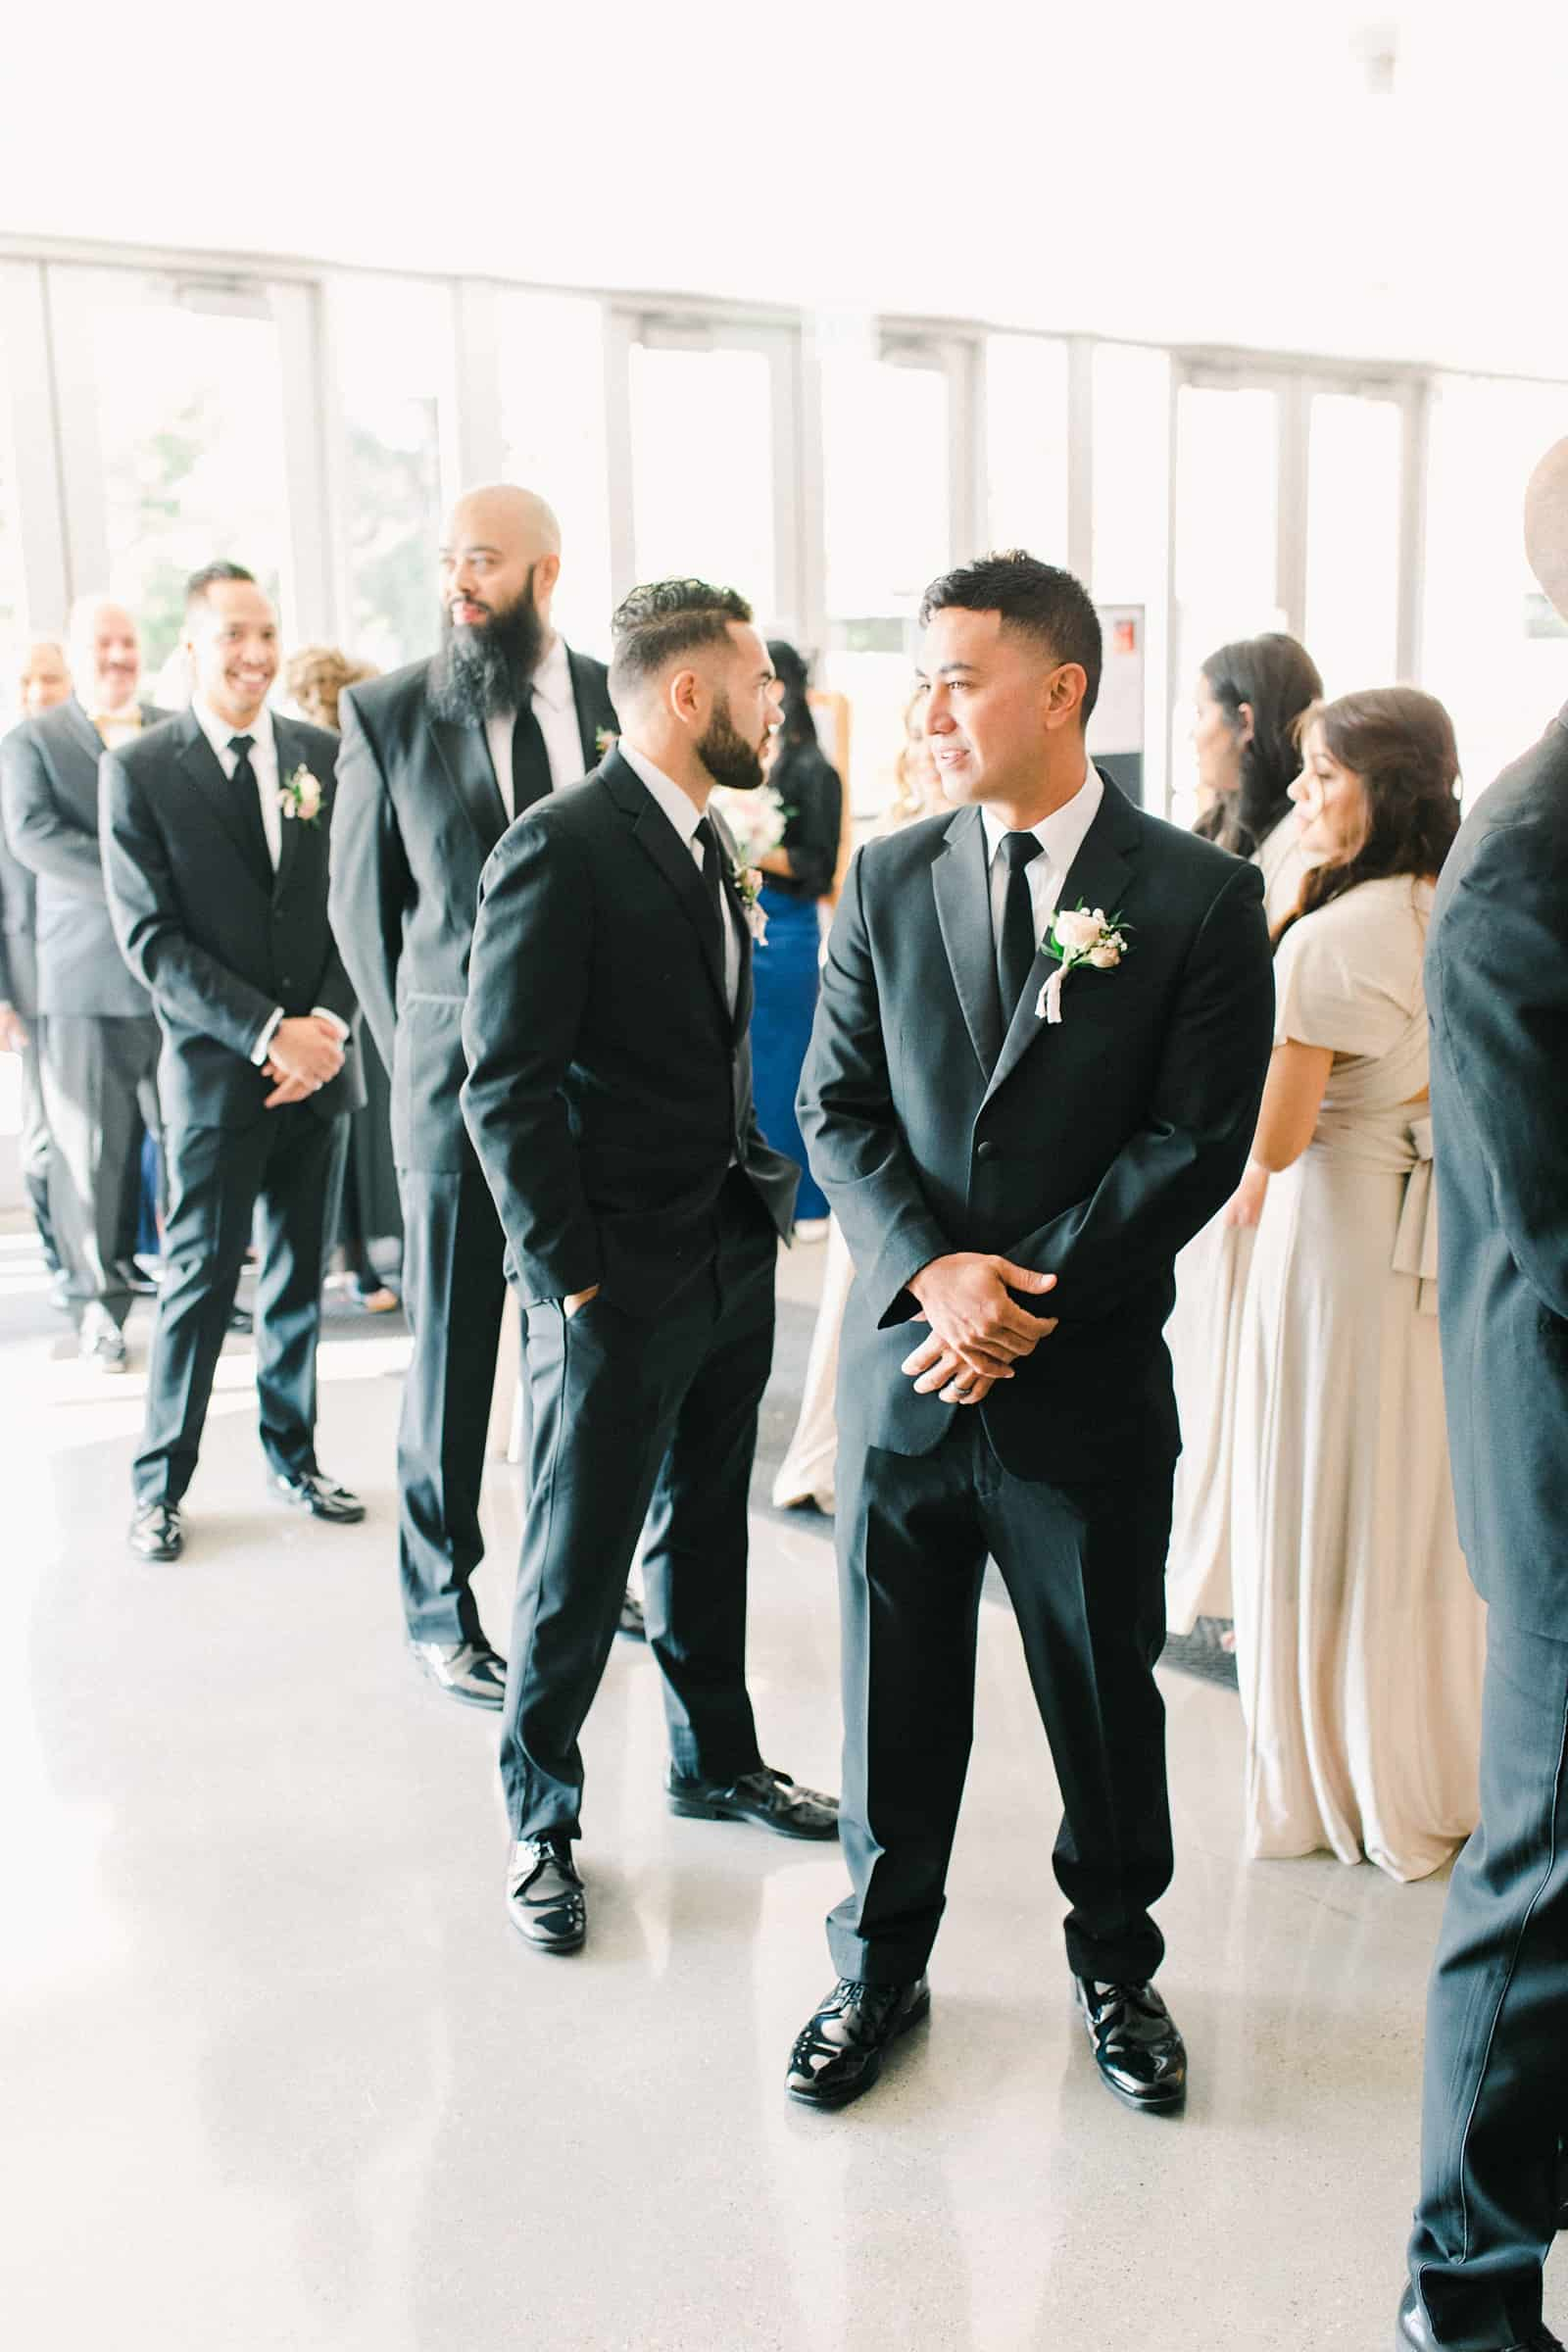 Groom and groomsmen get ready for the ceremony